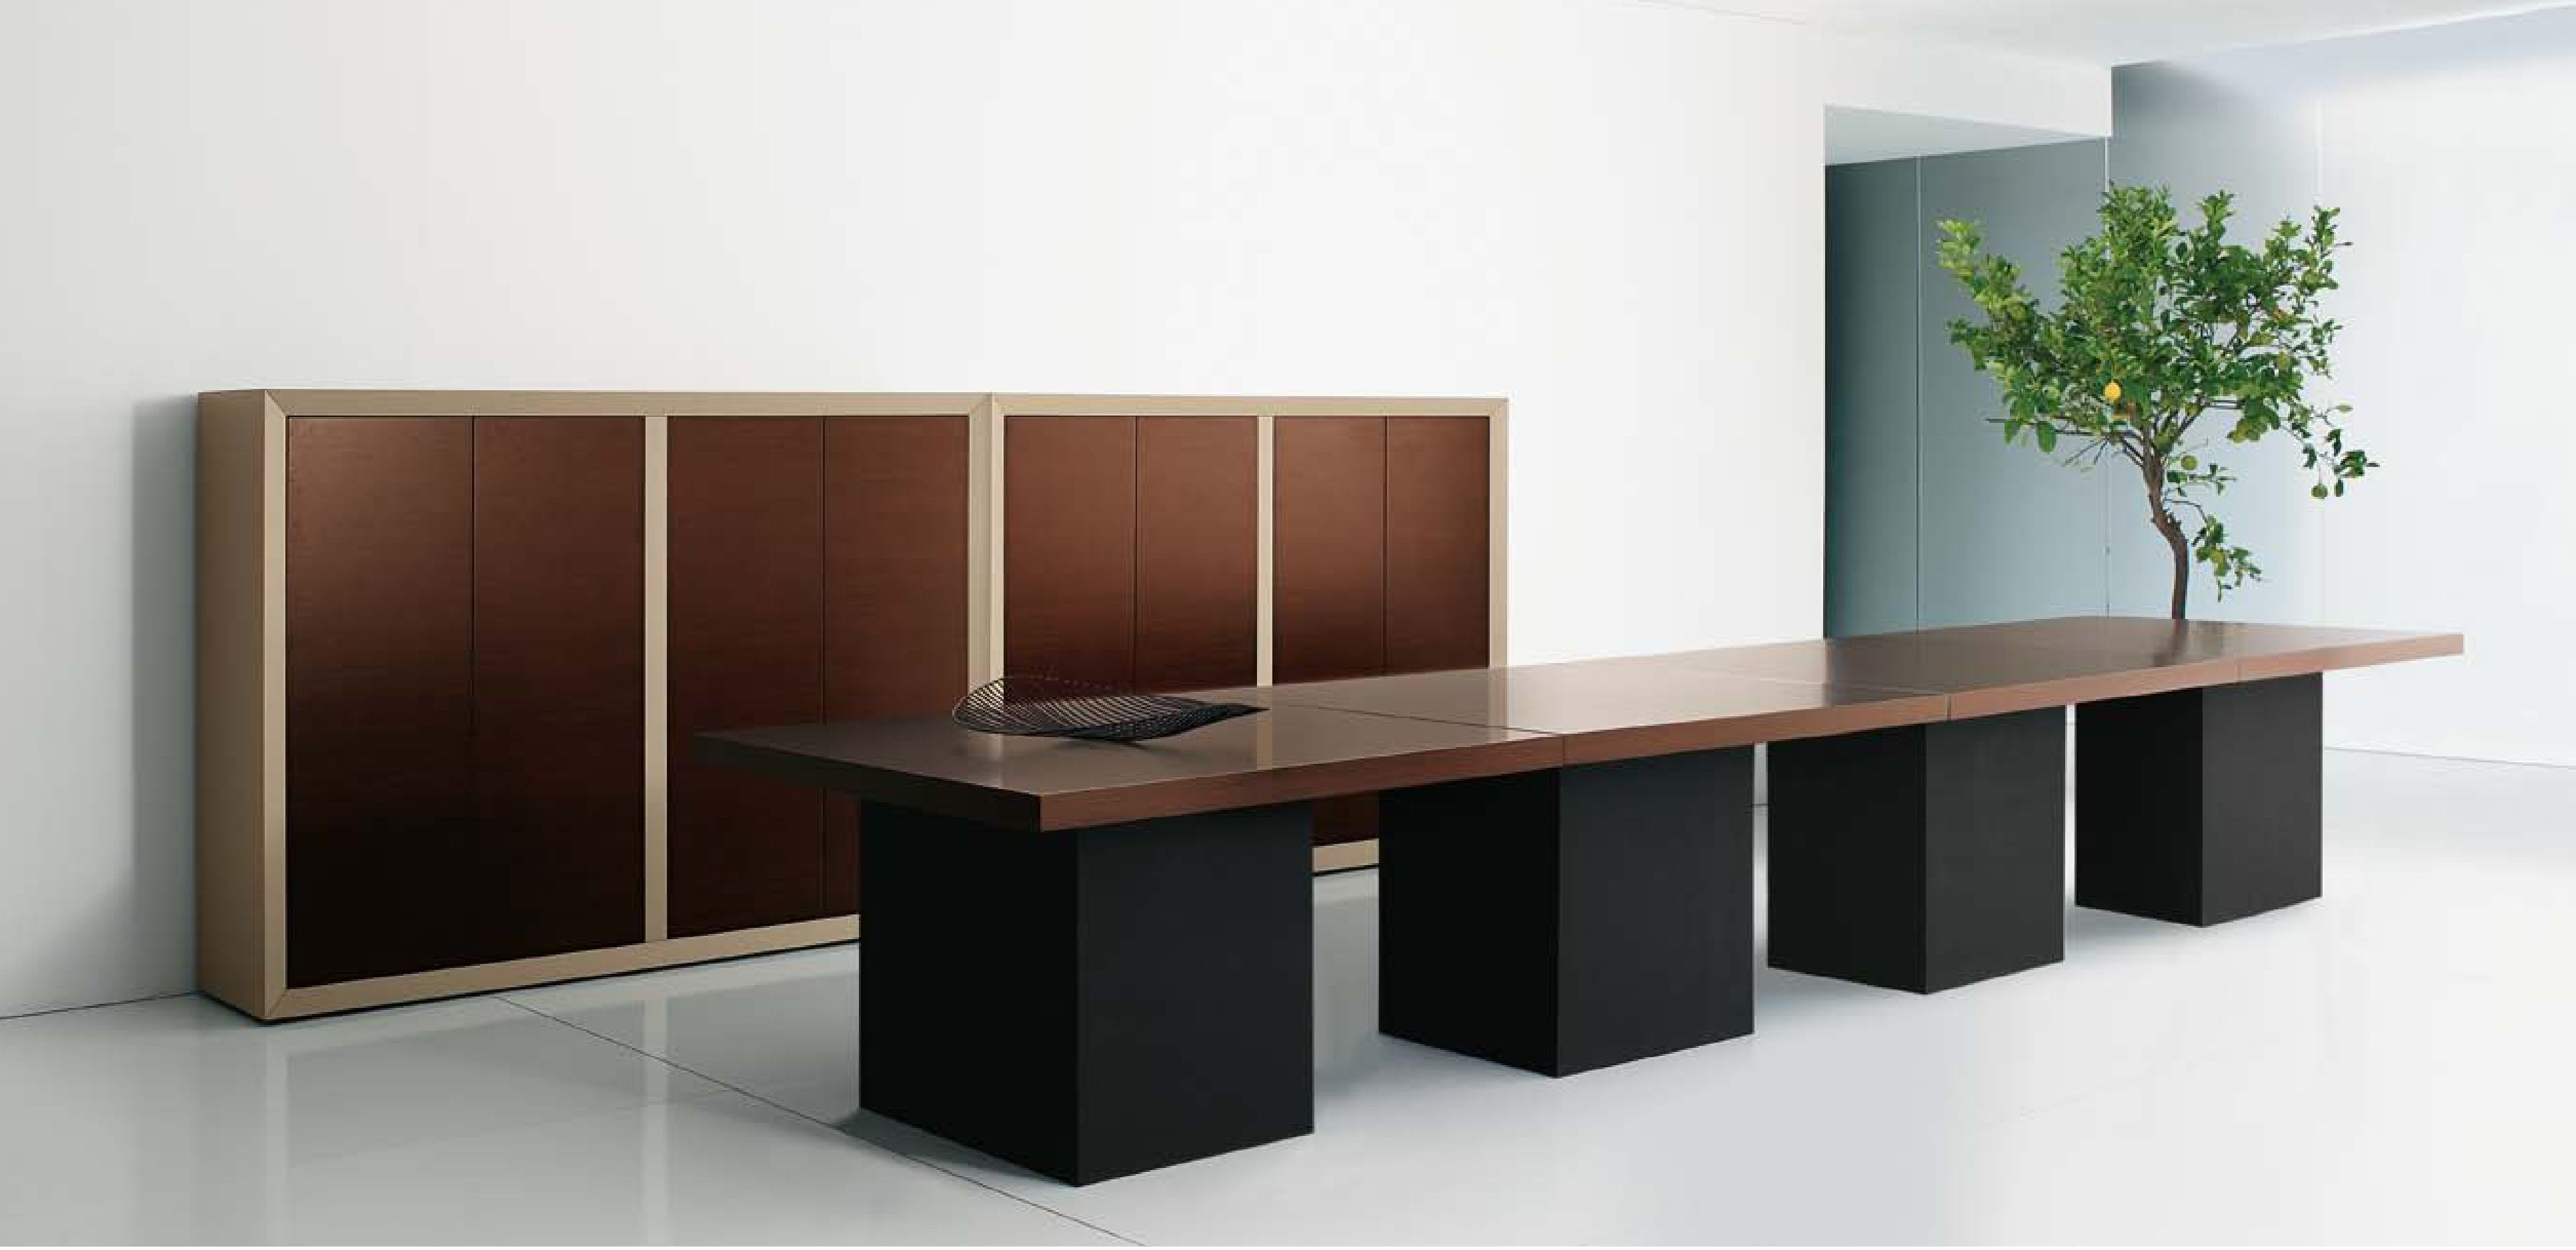 Simposio allows a strict interpretation of the office, without sacrificing simplicity and the representativeness of the decision making environment: a variety ranging from the simple desk to meeting rooms solutions, cabinets and bookcases, without losing the substance of the original project.